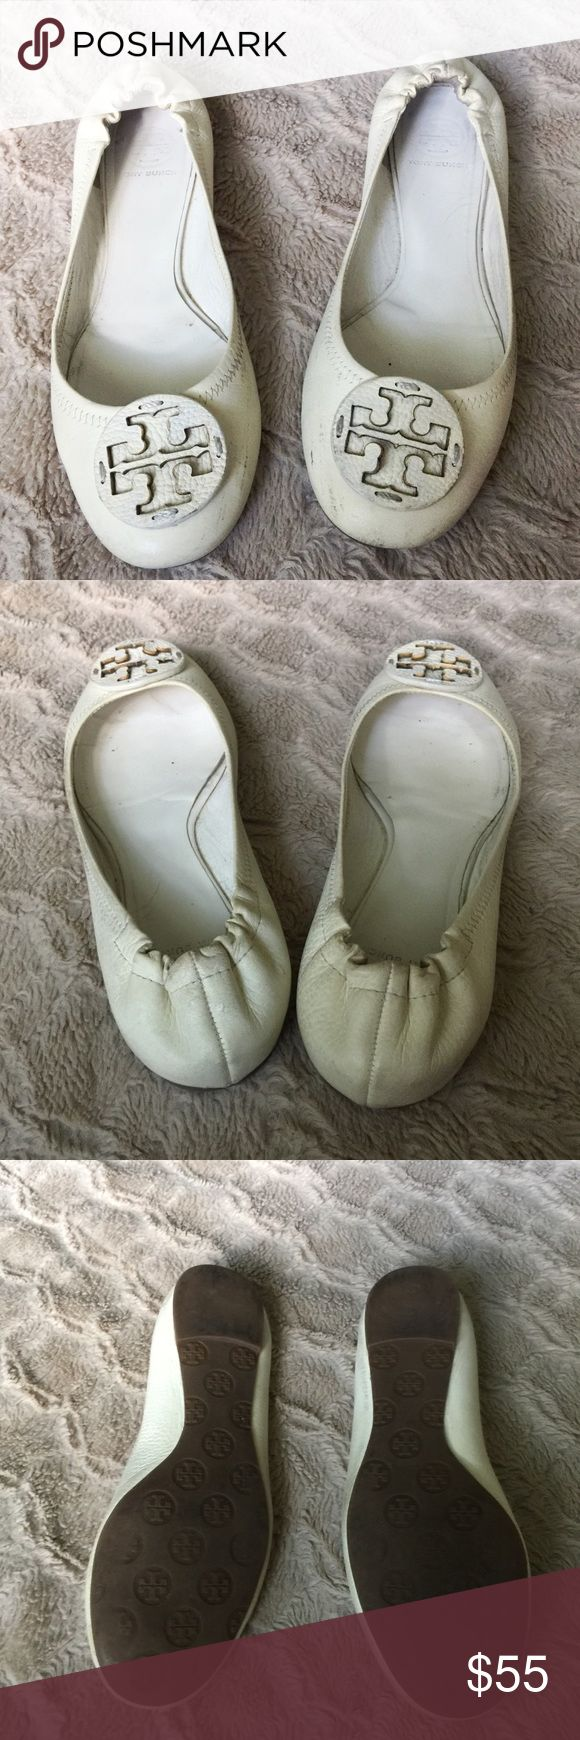 Tory Burch Cream Reva Flats Tory Burch Reva ballet flats in a lovely shade of cream. Size 10 and fit true to size. There are some cuffs that can be improved. Structurally in great shape and will look lovely with a little leather cleaner. Tory Burch Shoes Flats & Loafers